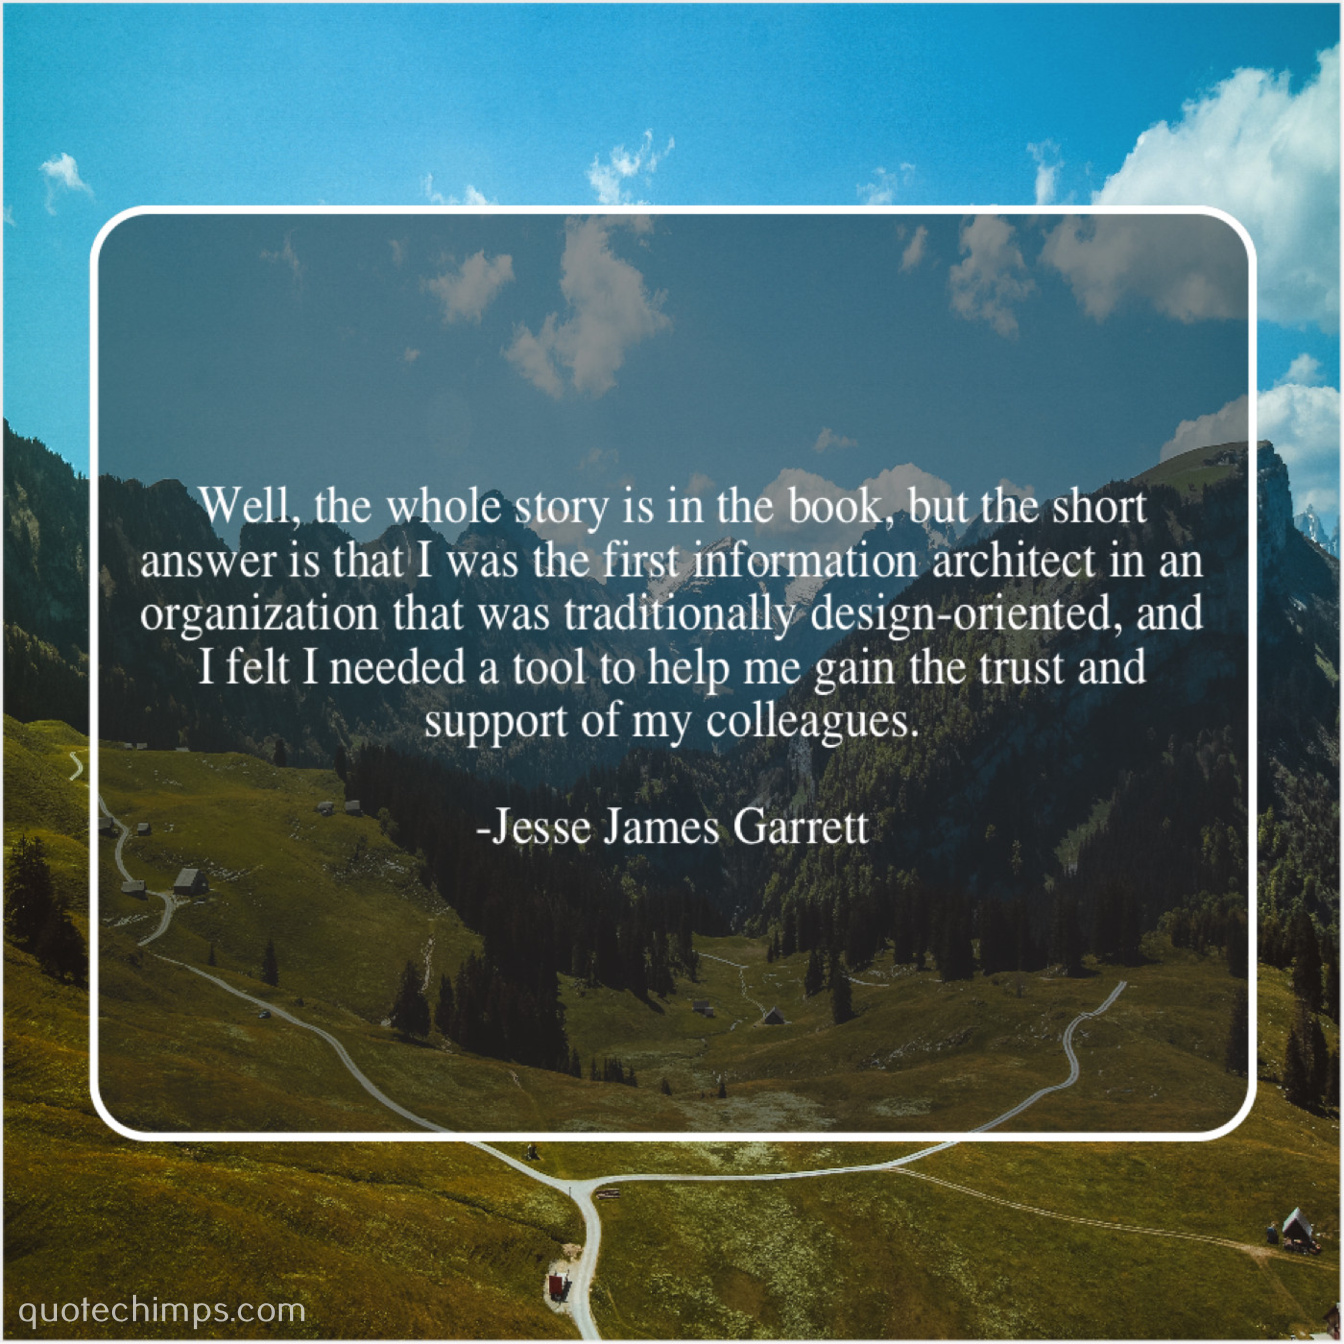 Jesse James Garrett Well The Whole Story Is